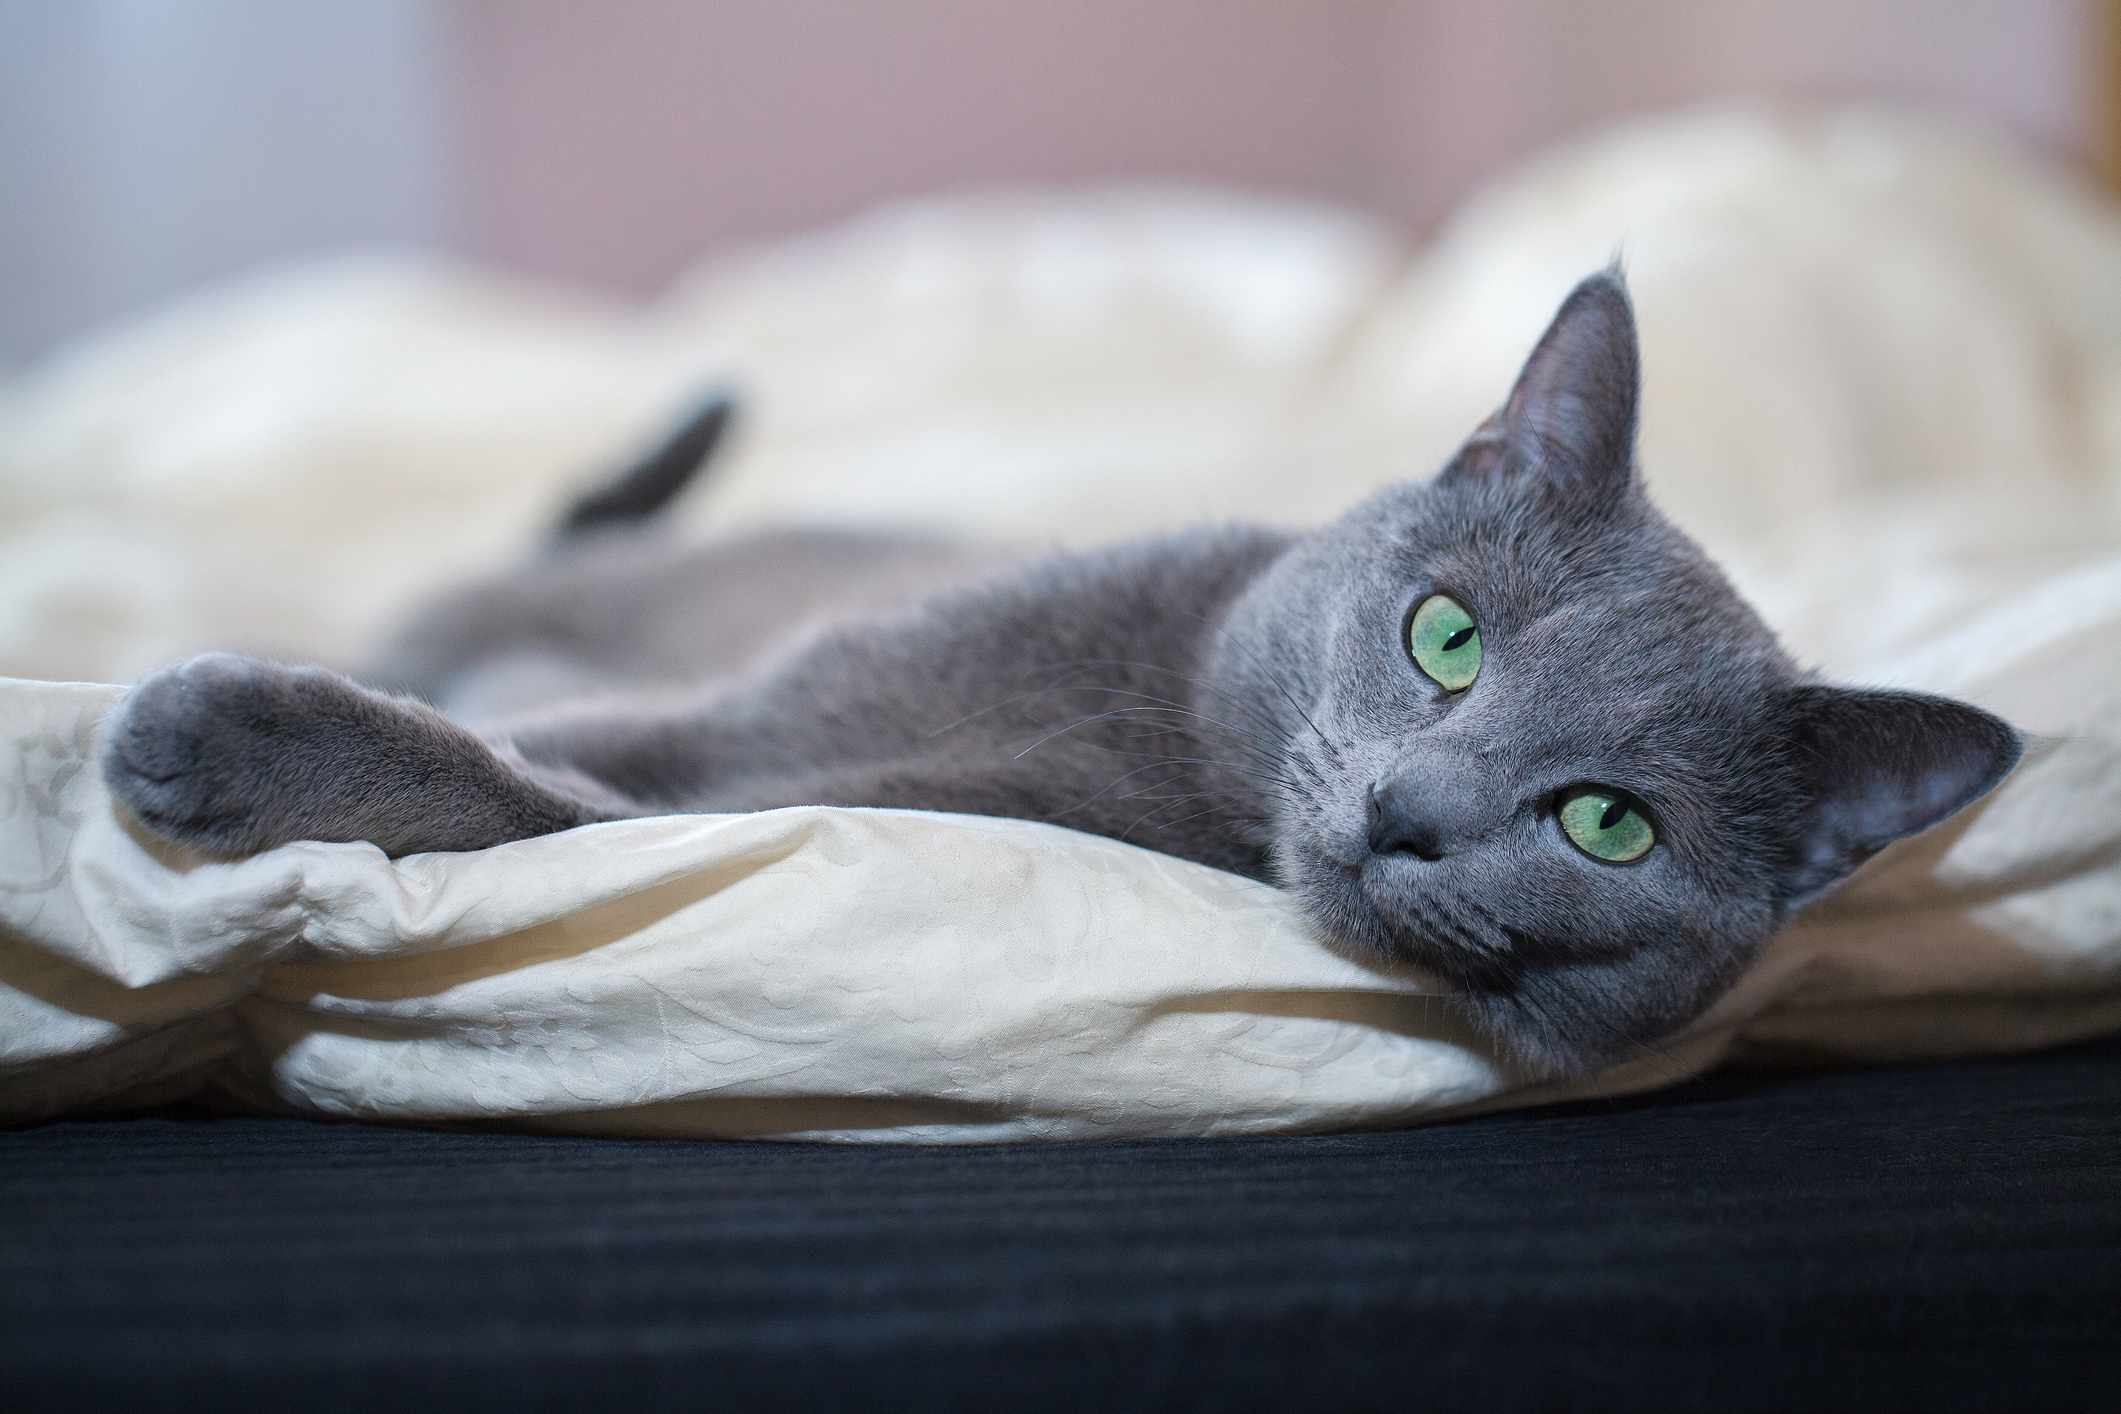 A gray cat with green eyes lounging on a sheet.